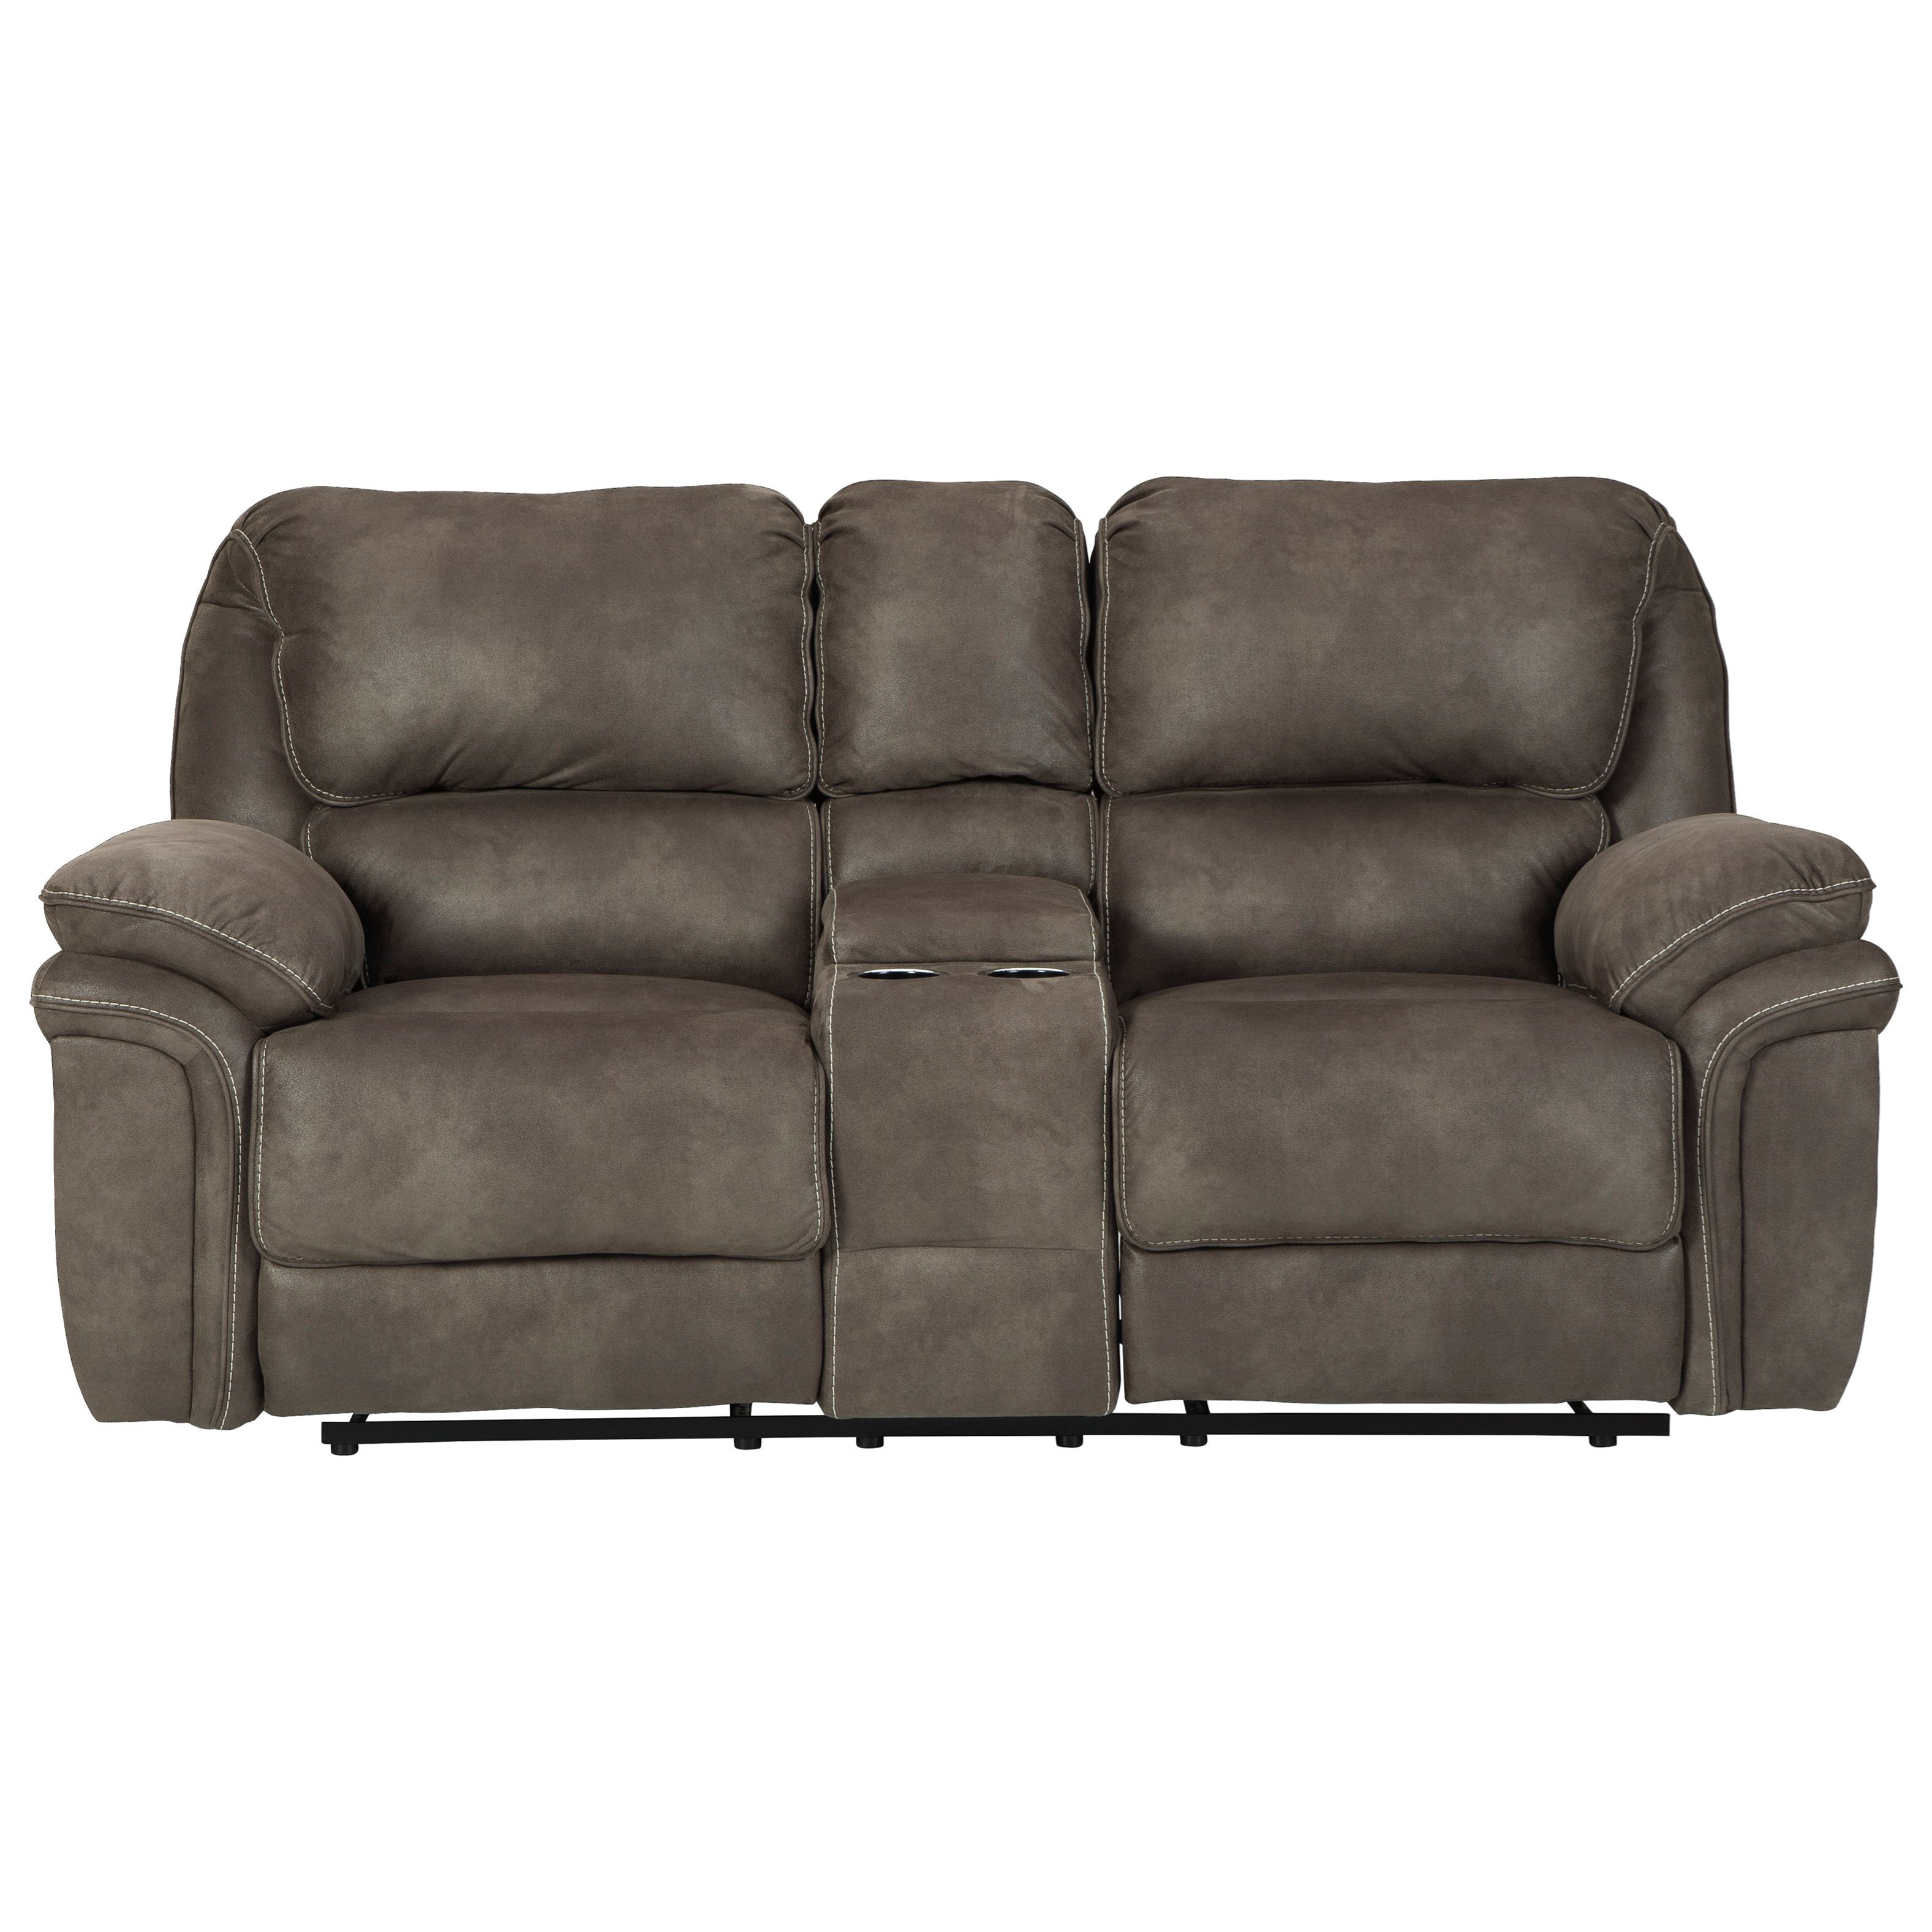 Trementon Double Reclining Power Loveseat w/ Console by Benchcraft at Value City Furniture